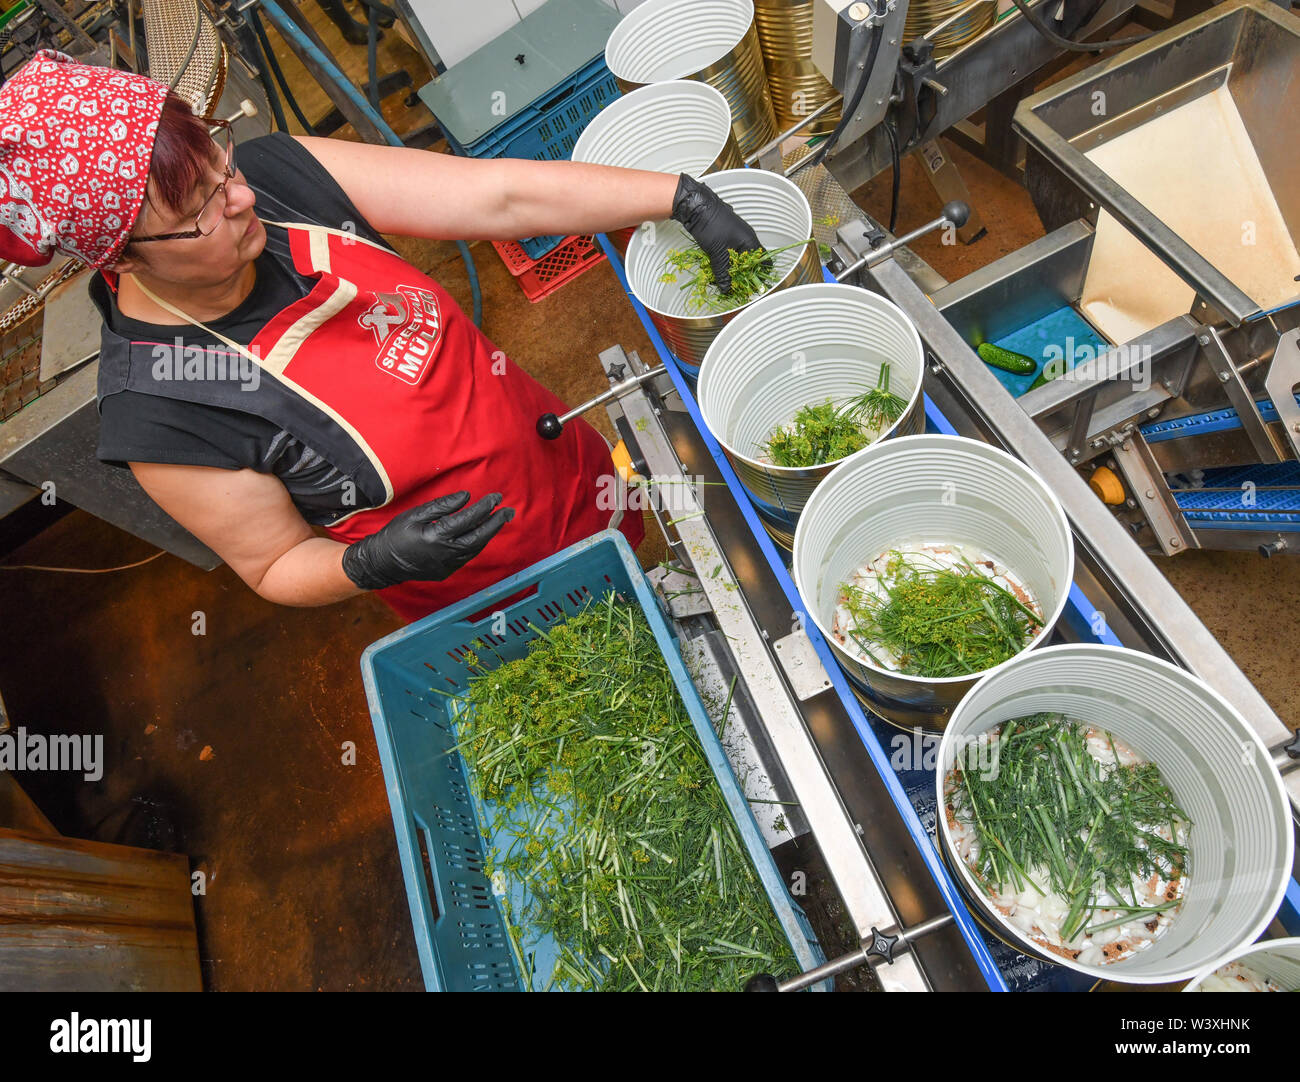 18 July 2019, Brandenburg, Lübbenau: Viola Hellwig, employee of Spreewaldmüller GmbH & Co. KG, places herbs and spices in large cans, which are then filled with pickled gherkins in the next step. In many places in the Spreewald, emphasis is still placed on gentle manual work. At Spreewald Müller the processing of the well-known Spreewald cucumber is currently in full swing. The 25 employees of the family business process between 15 and 18 tons of cucumbers every day. Photo: Patrick Pleul/dpa-Zentralbild/ZB - Stock Image